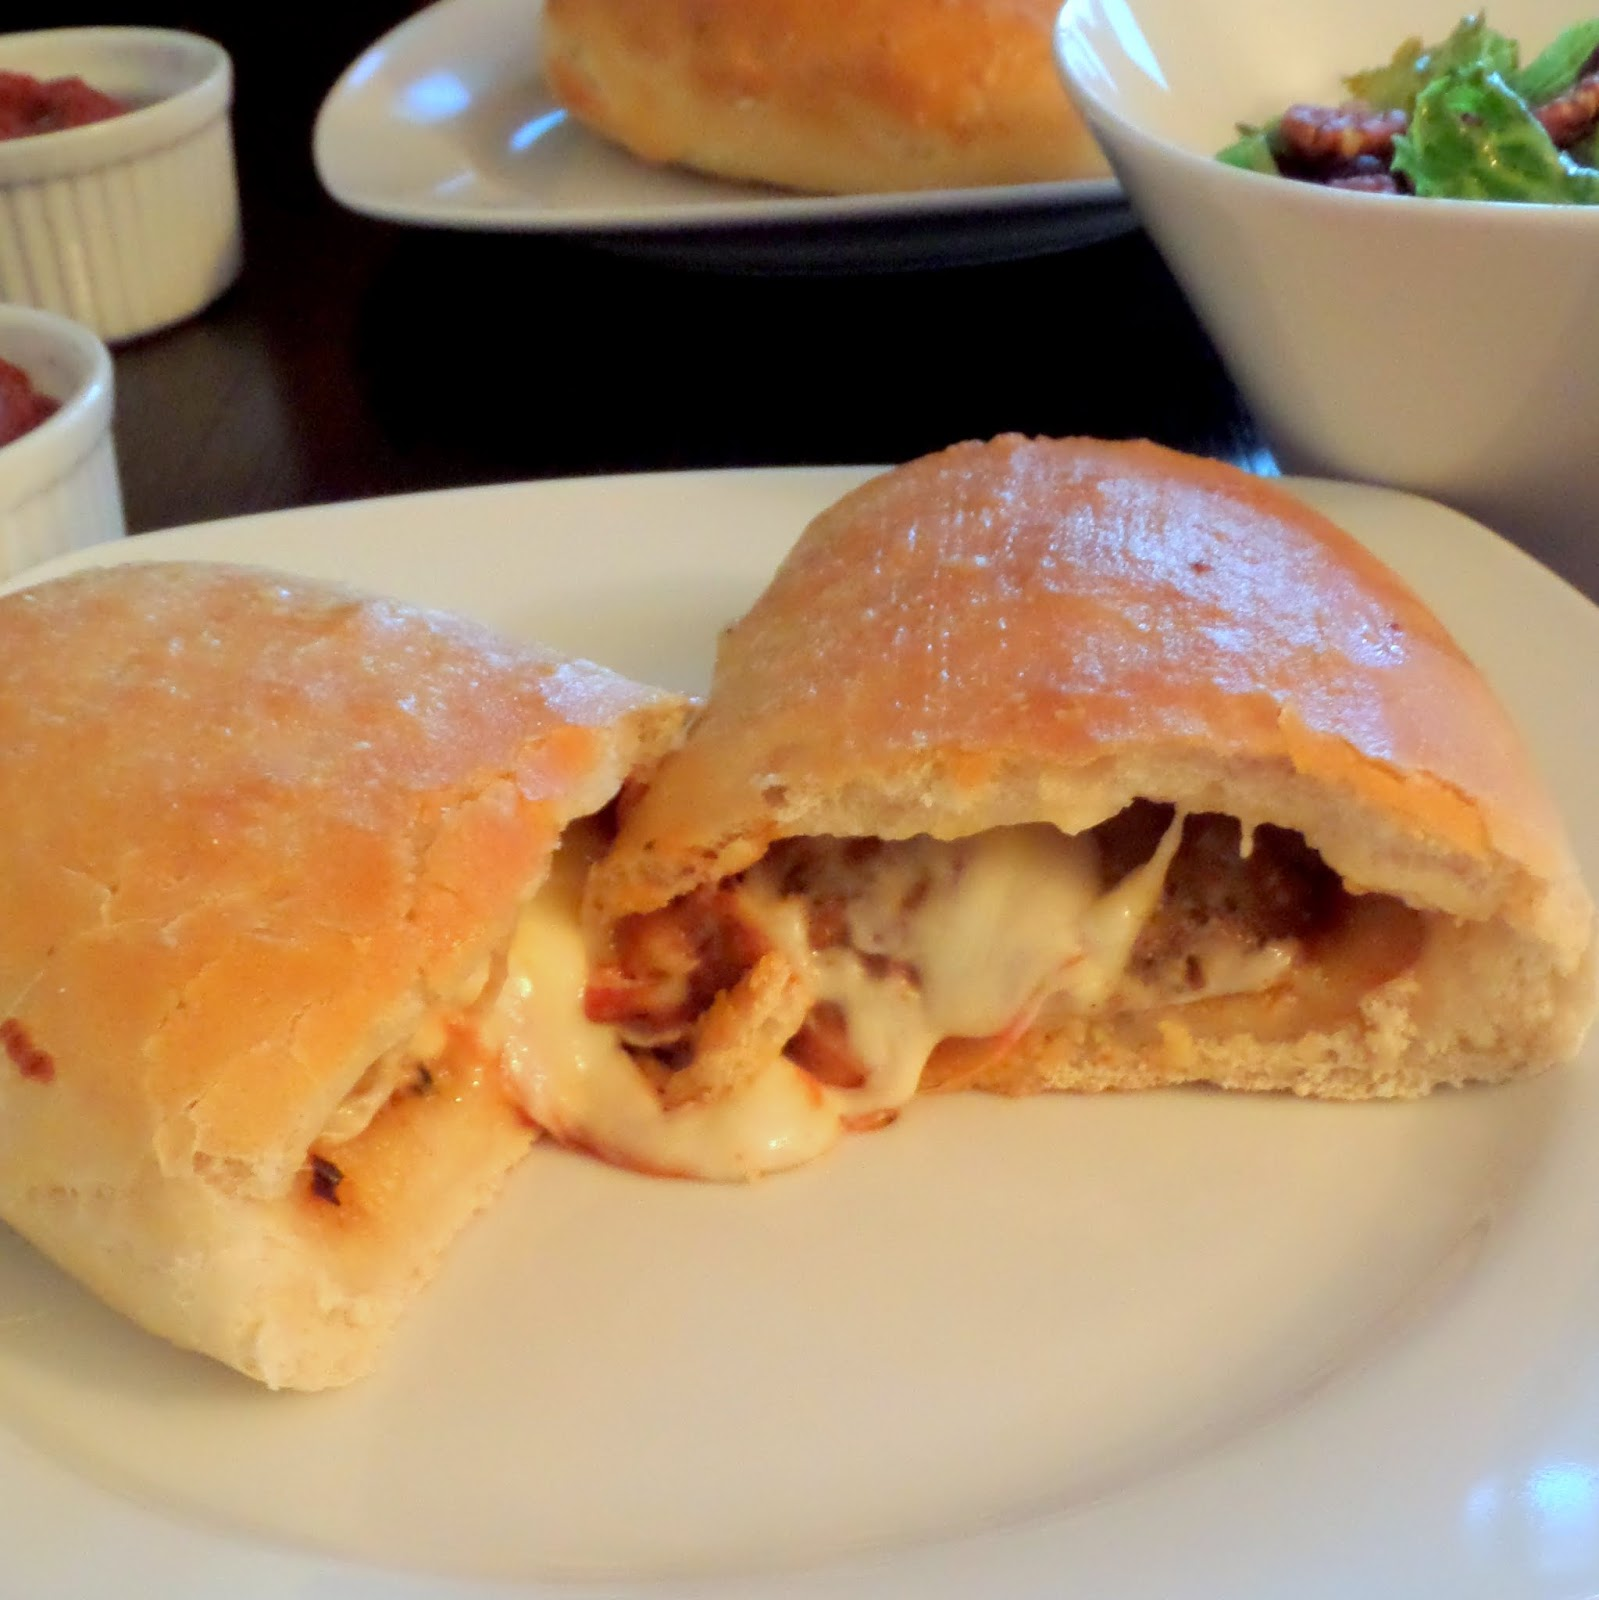 Meatball Calzones:  Hot gooey cheese and meatballs folded inside a soft and chewy pizza crust.